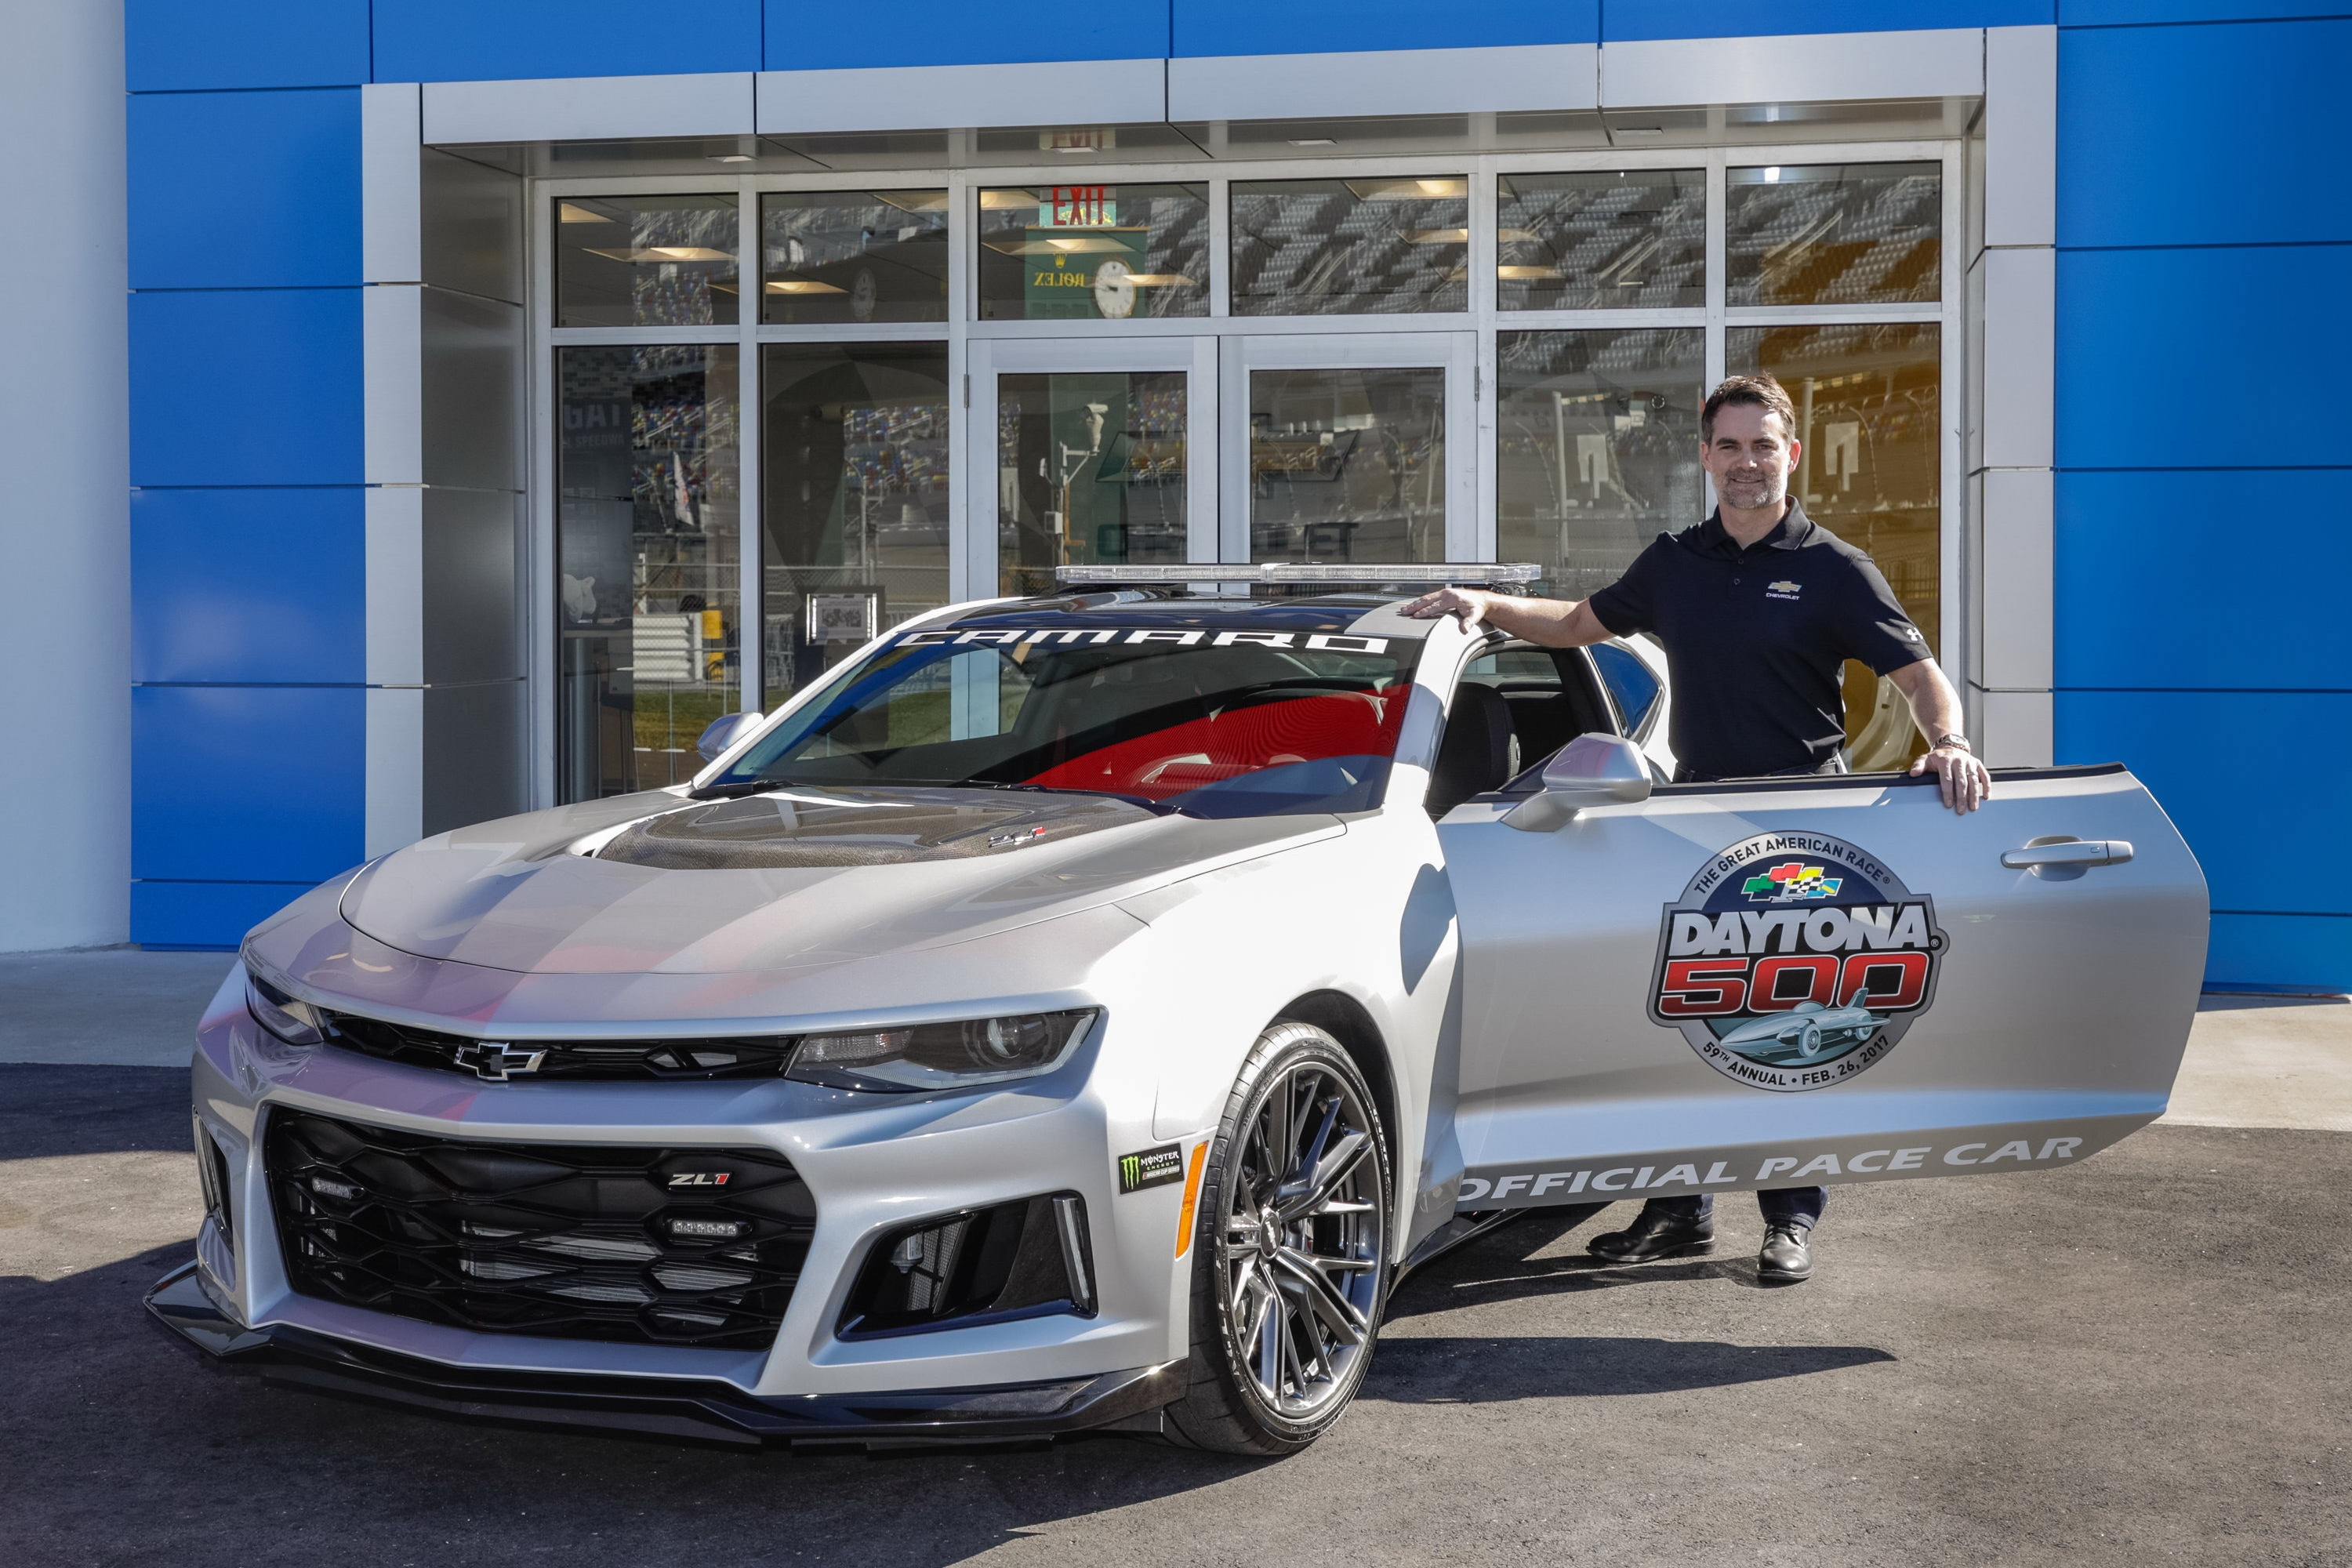 2017 Chevrolet Camaro Zl1 Daytona 500 Pace Car Review